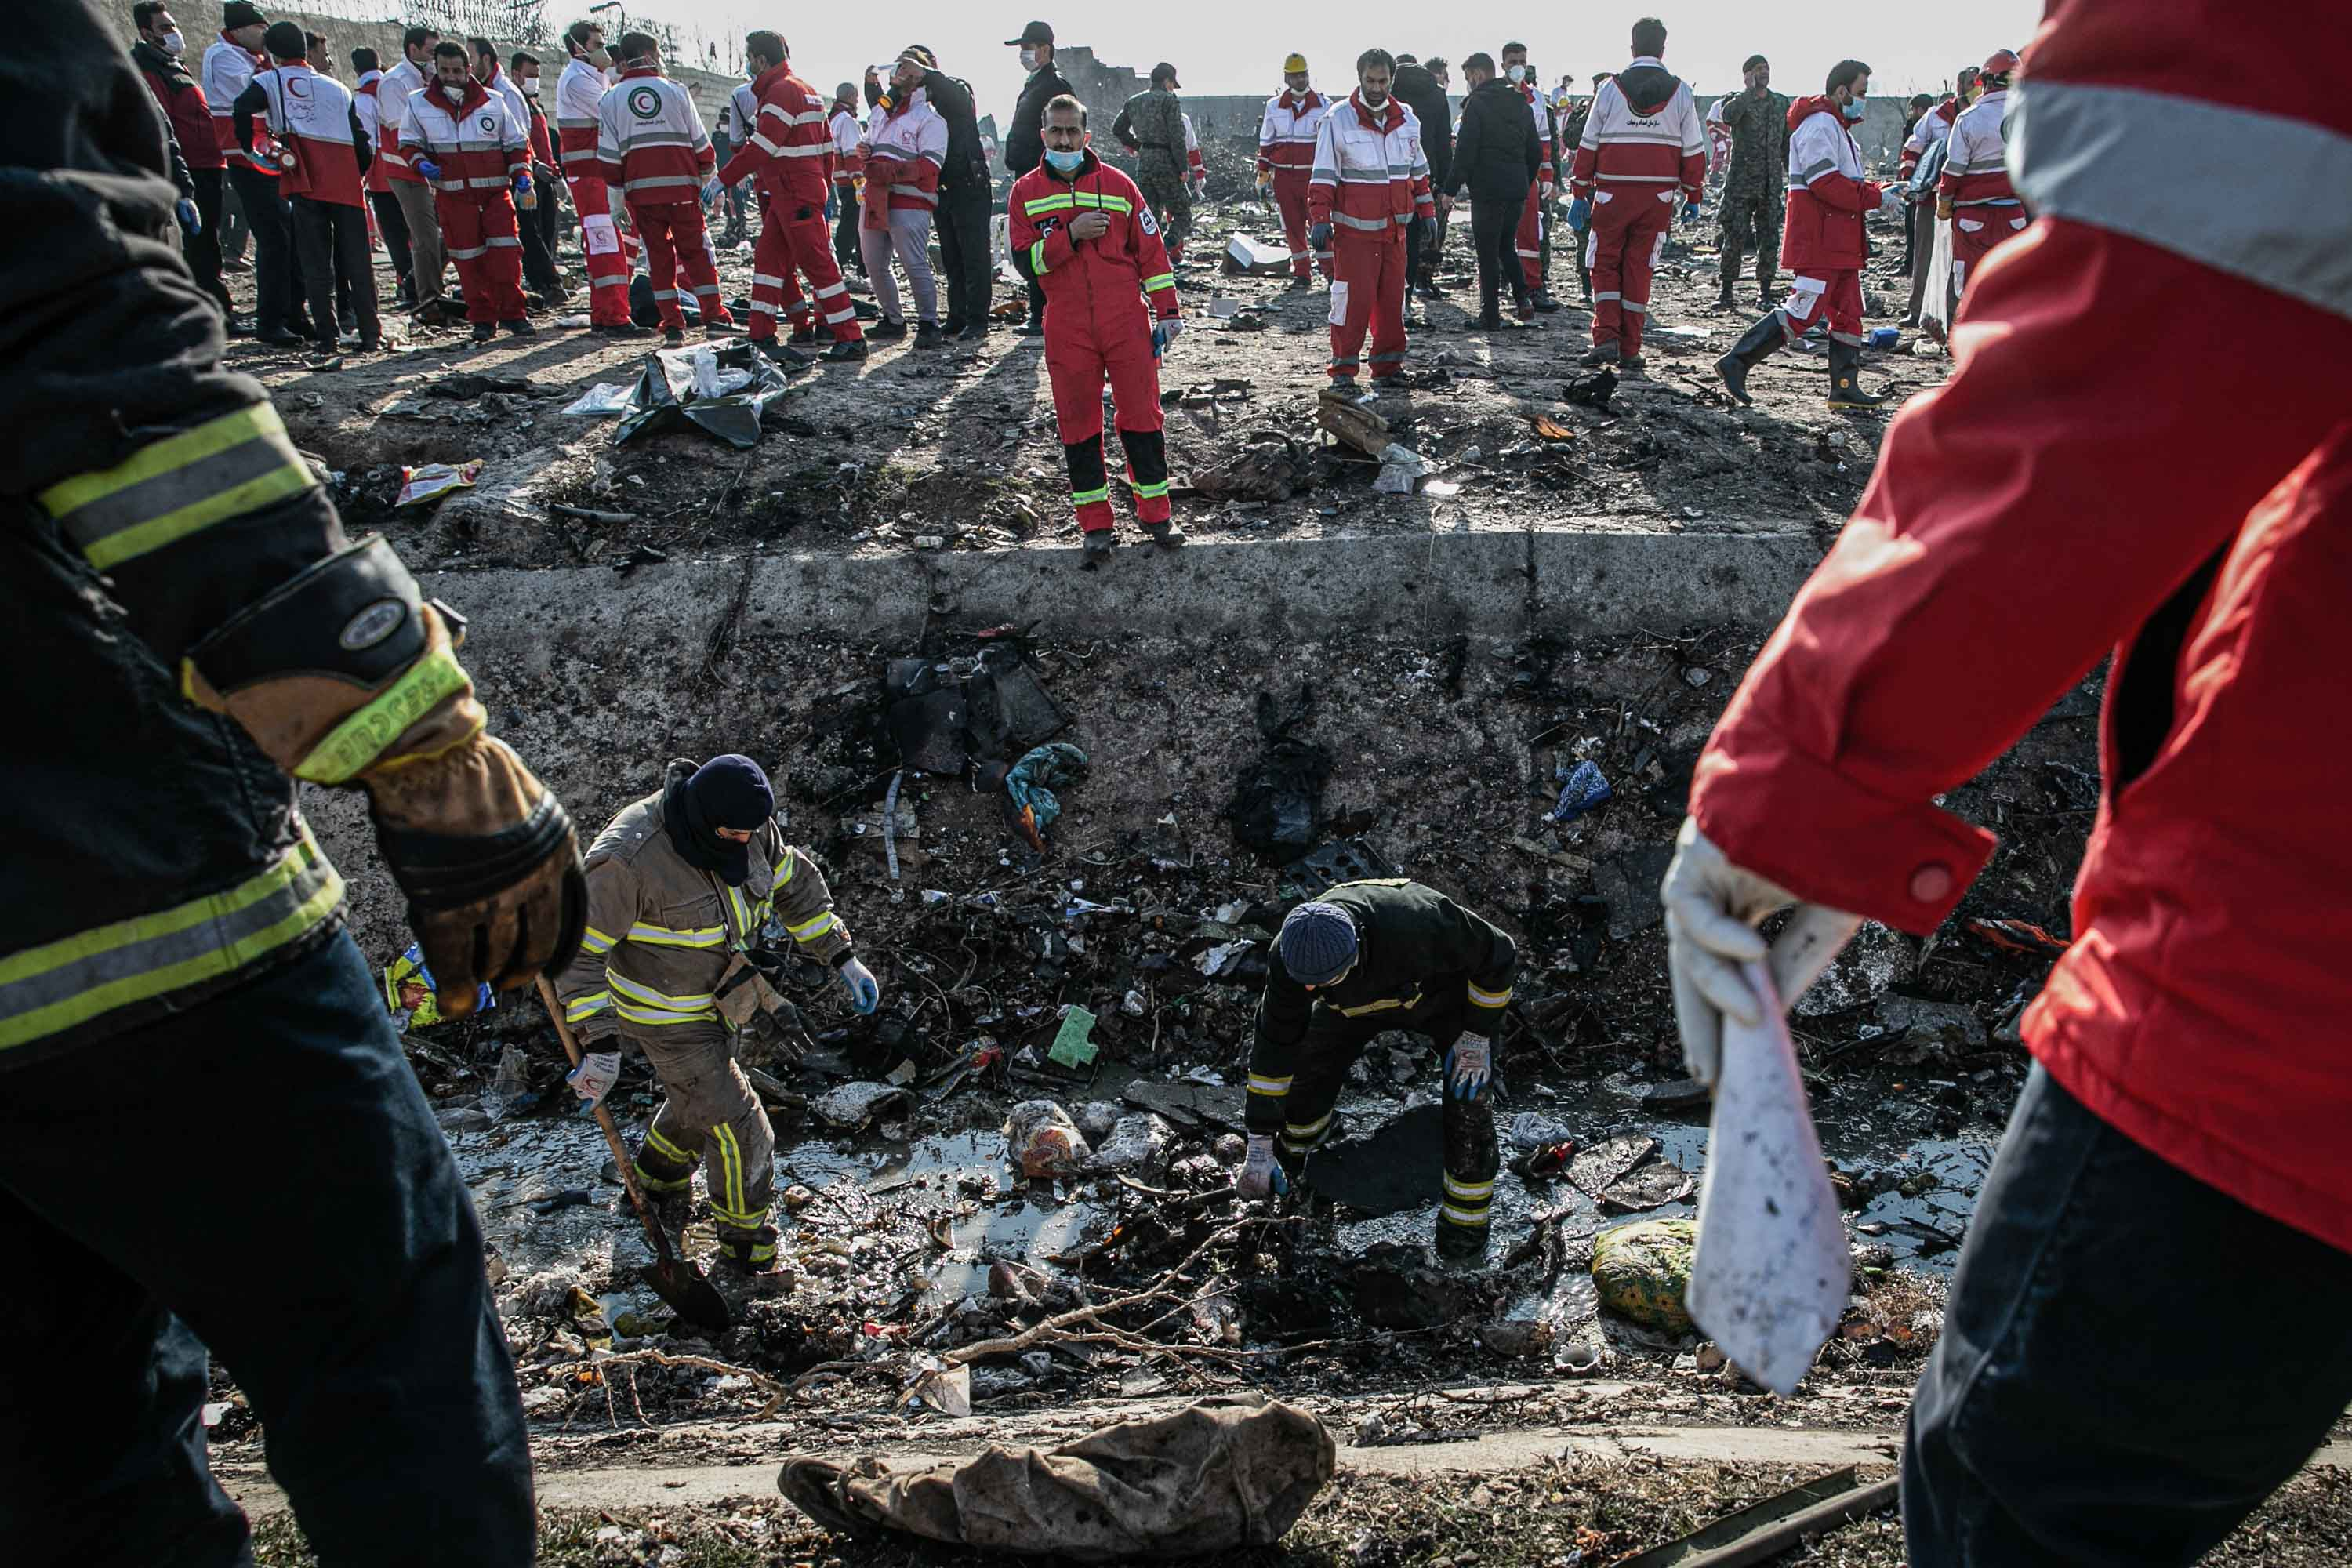 08 January 2020, Iran, Shahedshahr: Rescue workers search the scene, where a Ukrainian airplane carrying 176 people crashed on Wednesday shortly after takeoff from Tehran airport, killing all onboard. Photo: Foad Ashtari/dpa (Photo by Foad Ashtari/picture alliance via Getty Images)